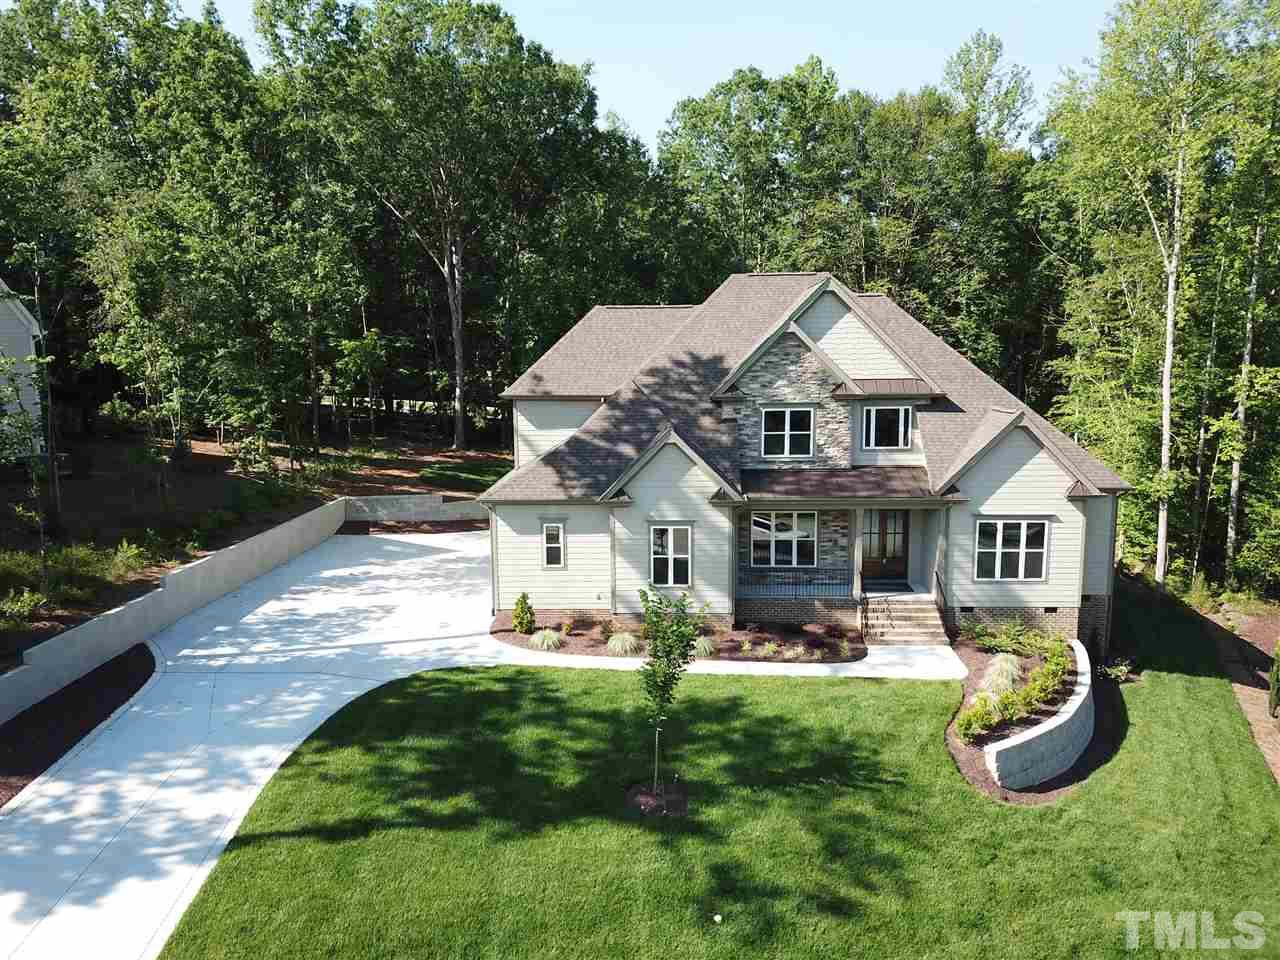 THE ART OF LUXURY by Kirkwood Builders! Ultra Luxe Estate Home on .74 acres in The 9, an exclusive 9 home gated community in amenity-rich Flowers Plantation! 4 BDR/3.5 BA w/Bonus & 3 Car Garage has 3528sf  featuring a delightful Floorplan w/grand Foyer; Formal Dining; Study on Main; Gourmet Kitchen has tons of upgrades; Vaulted Family; Stunning Master Retreat & amazing SpaBath; Enjoy life in your SunRoom w/fireplace overlooking large & wooded Backyard! Drywall is up! Projected finish date is mid-December!